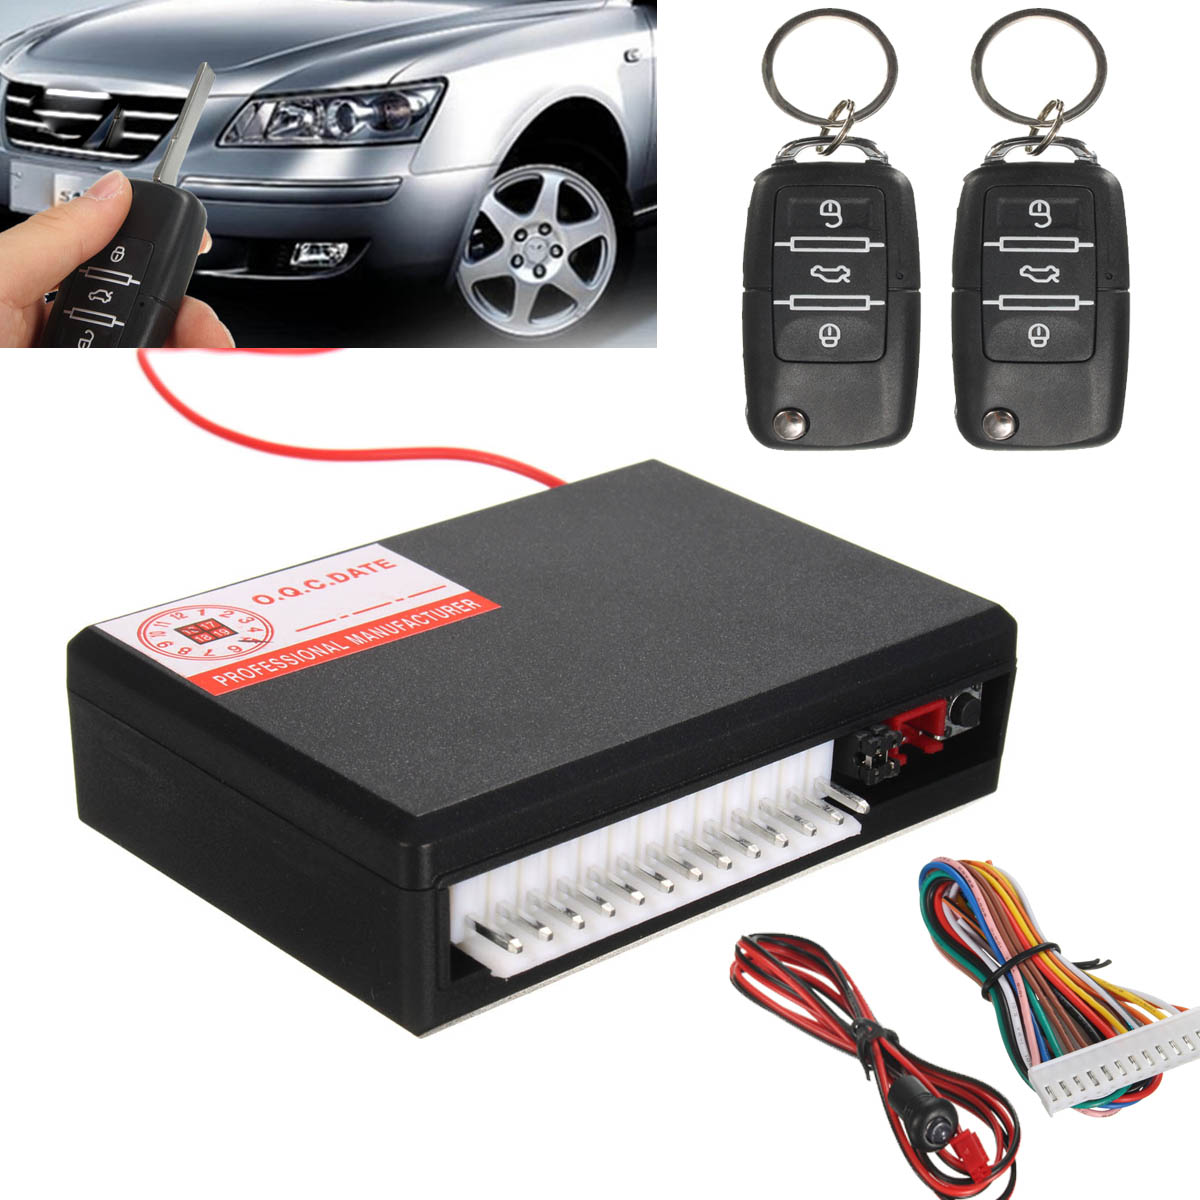 2016 New Universal Car Vehicle Remote Control Central Kit Door Lock Locking Keyless Entry Theft System(China (Mainland))